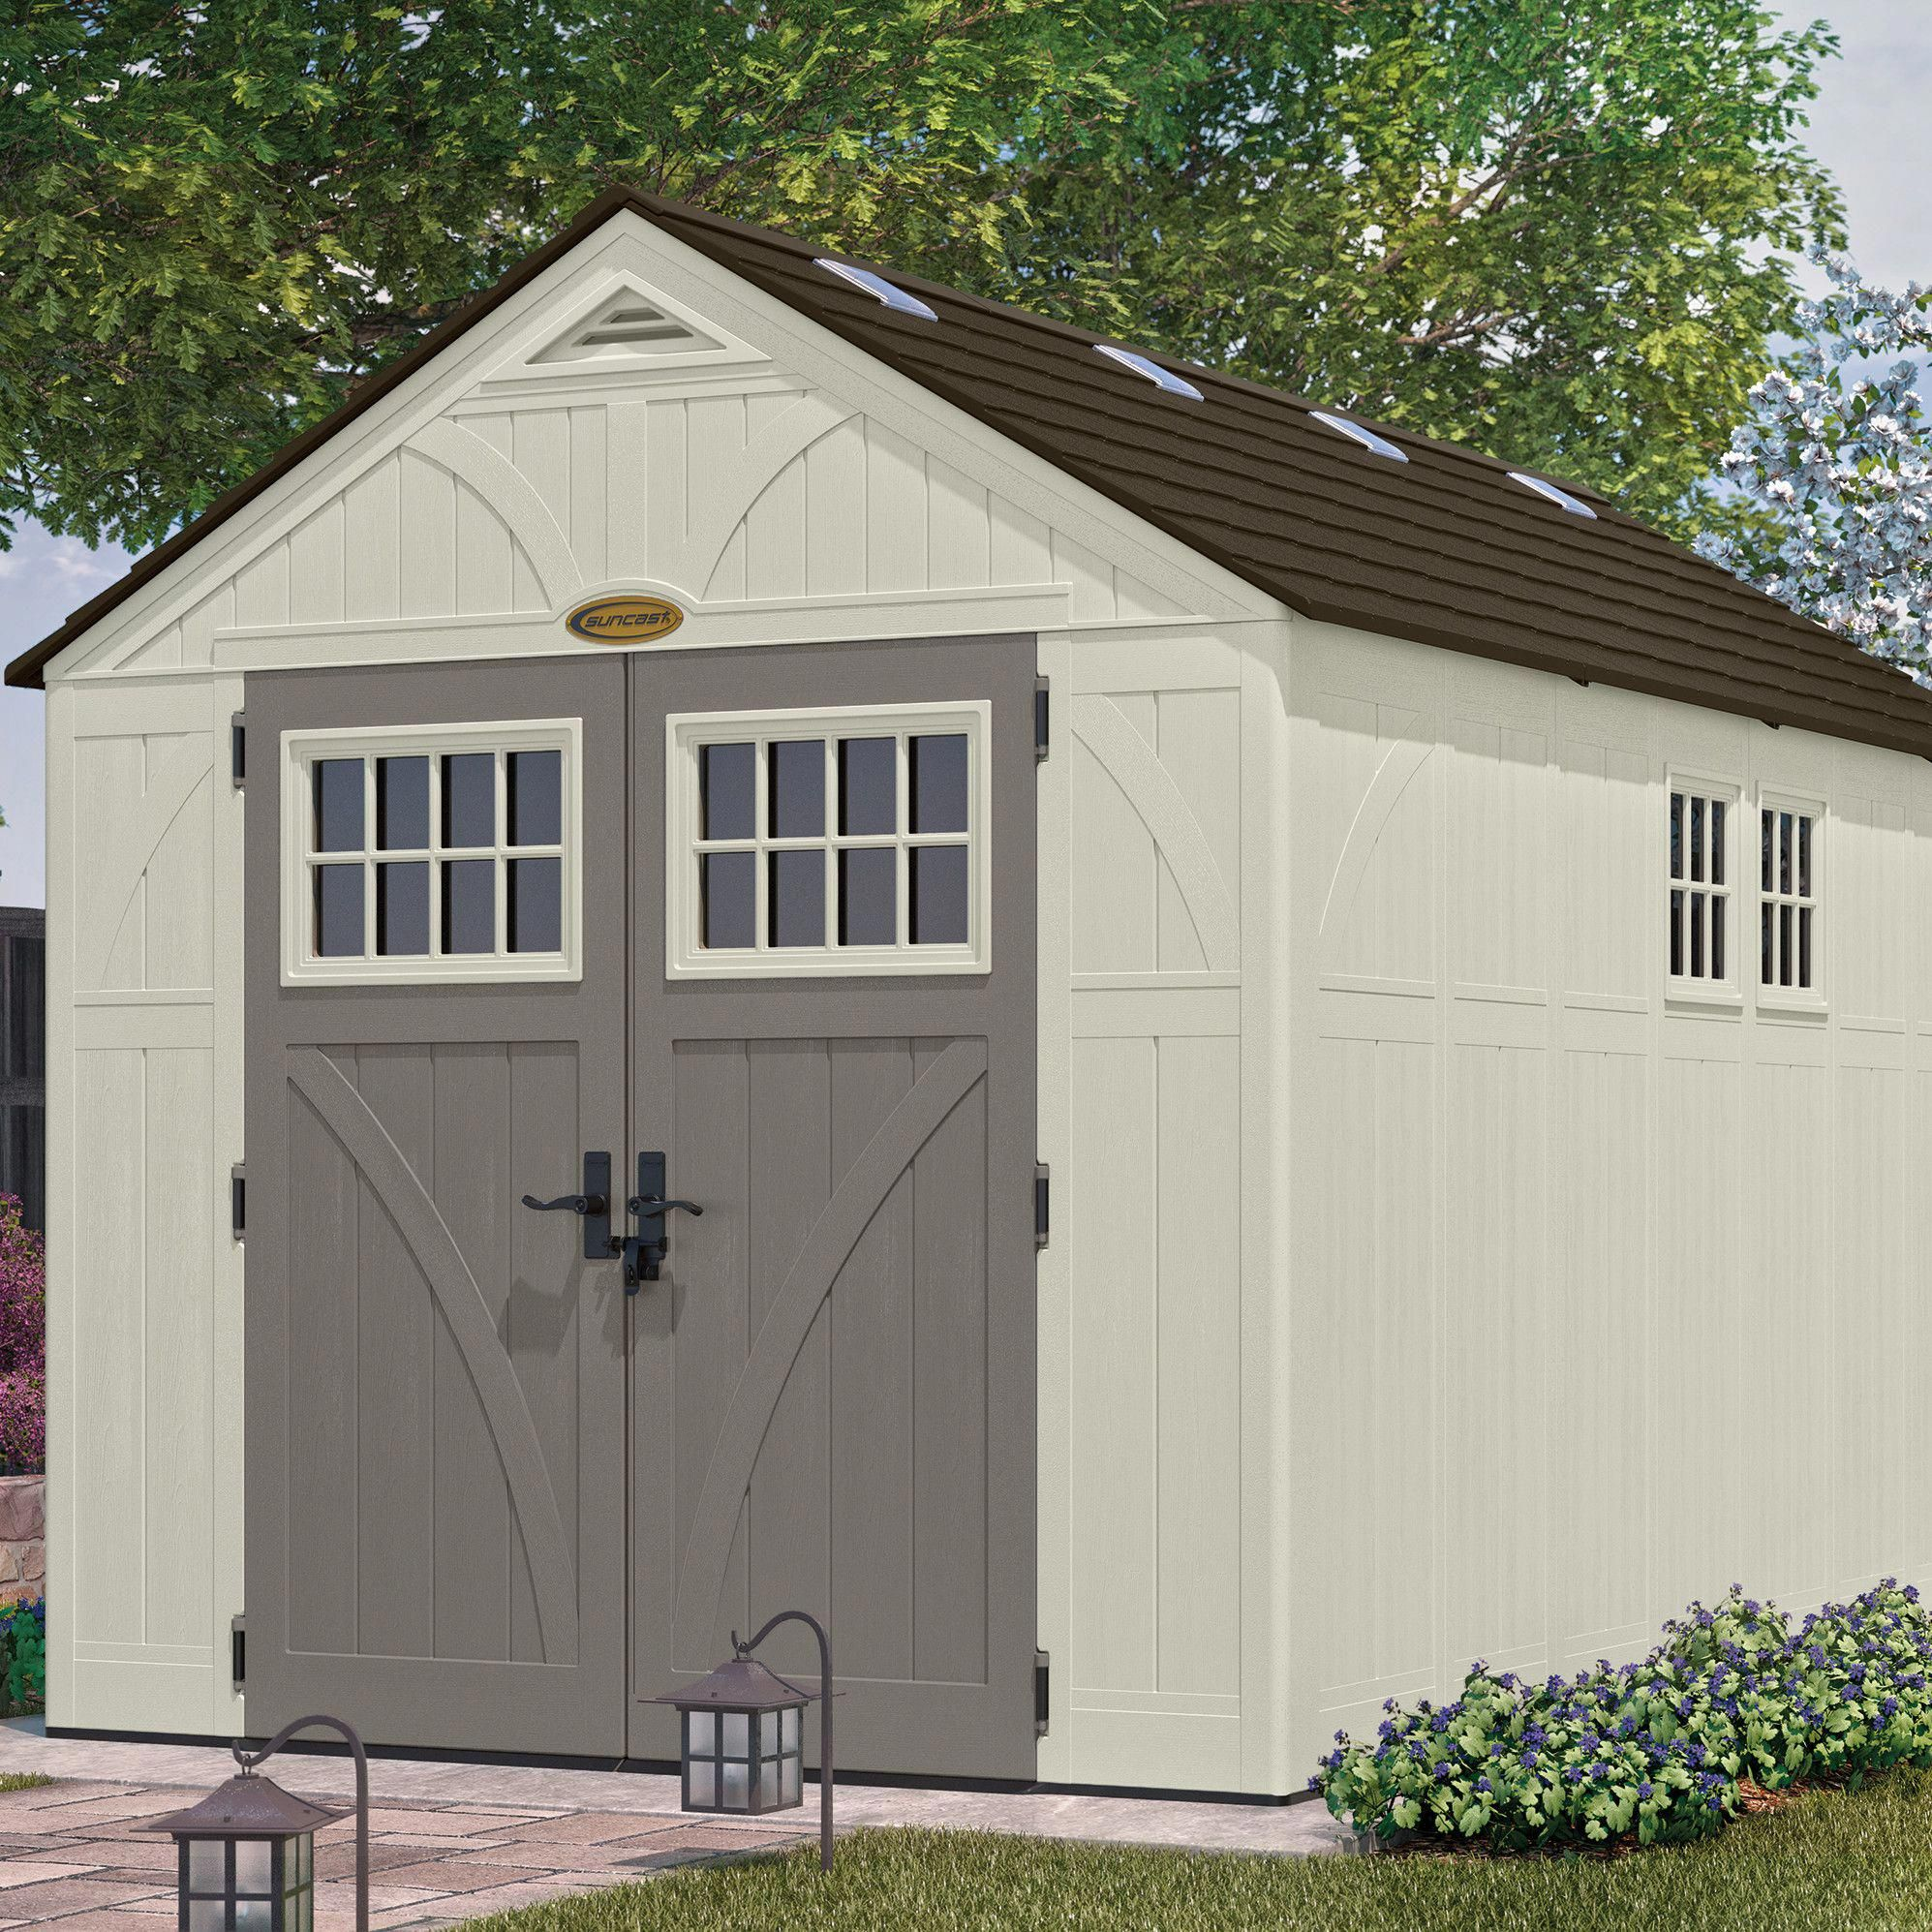 10 X 12 Shed Plans Pdf Product Id 3342231855 Plastic Storage Sheds Storage Shed Shed